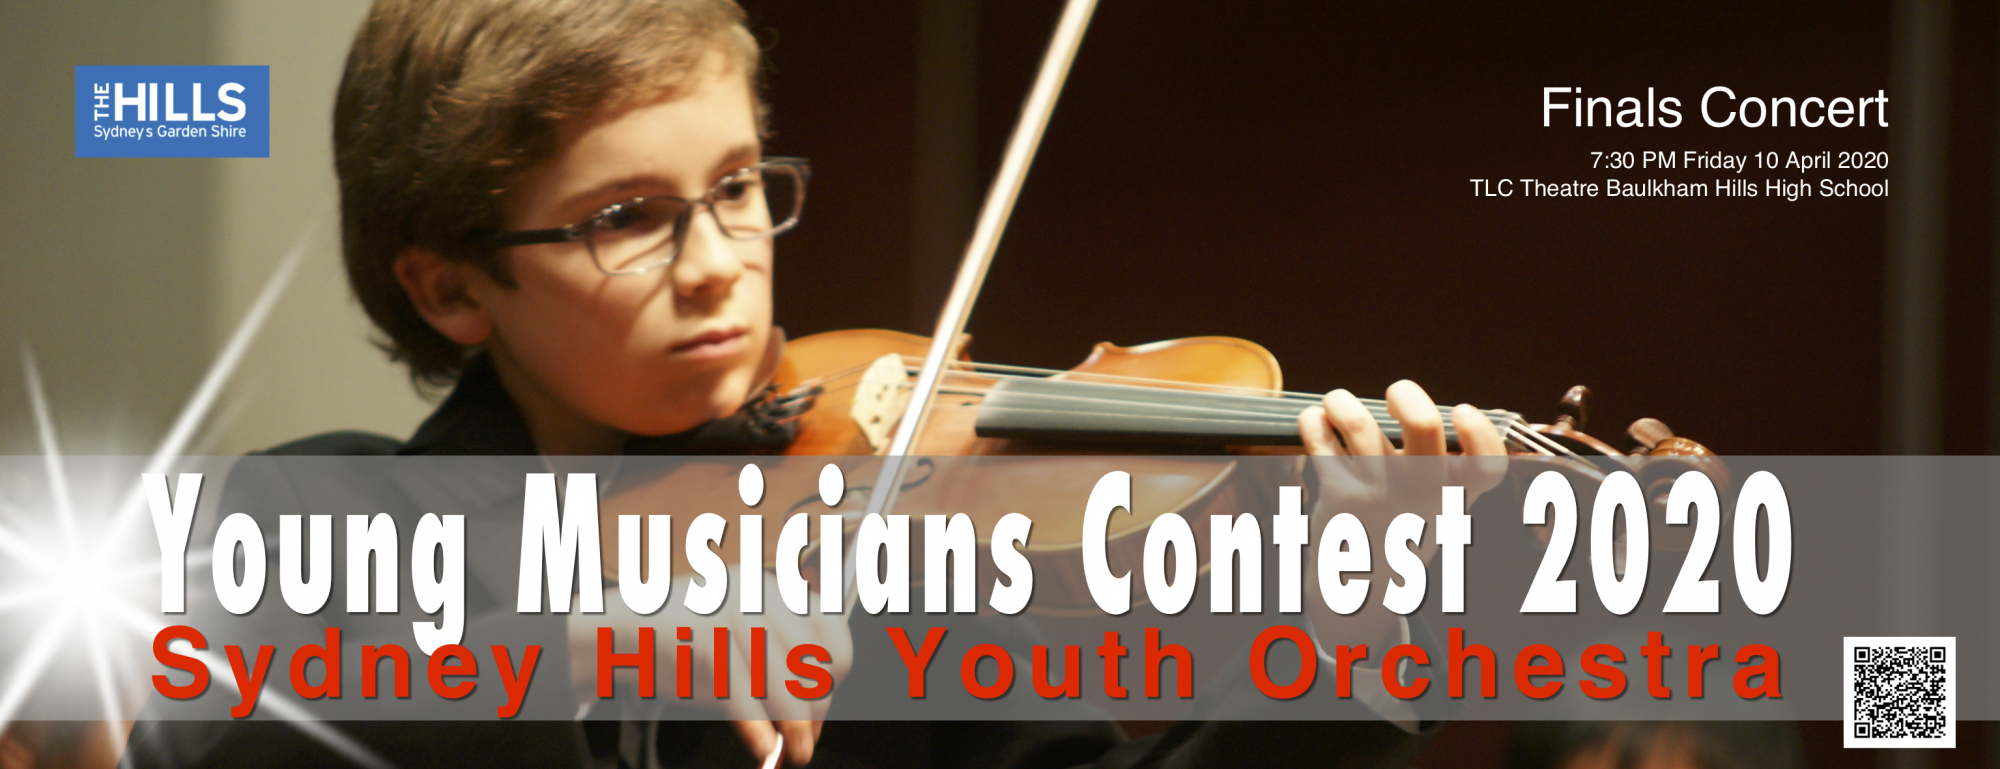 Finals Concert of Young Musicians Contest 2020